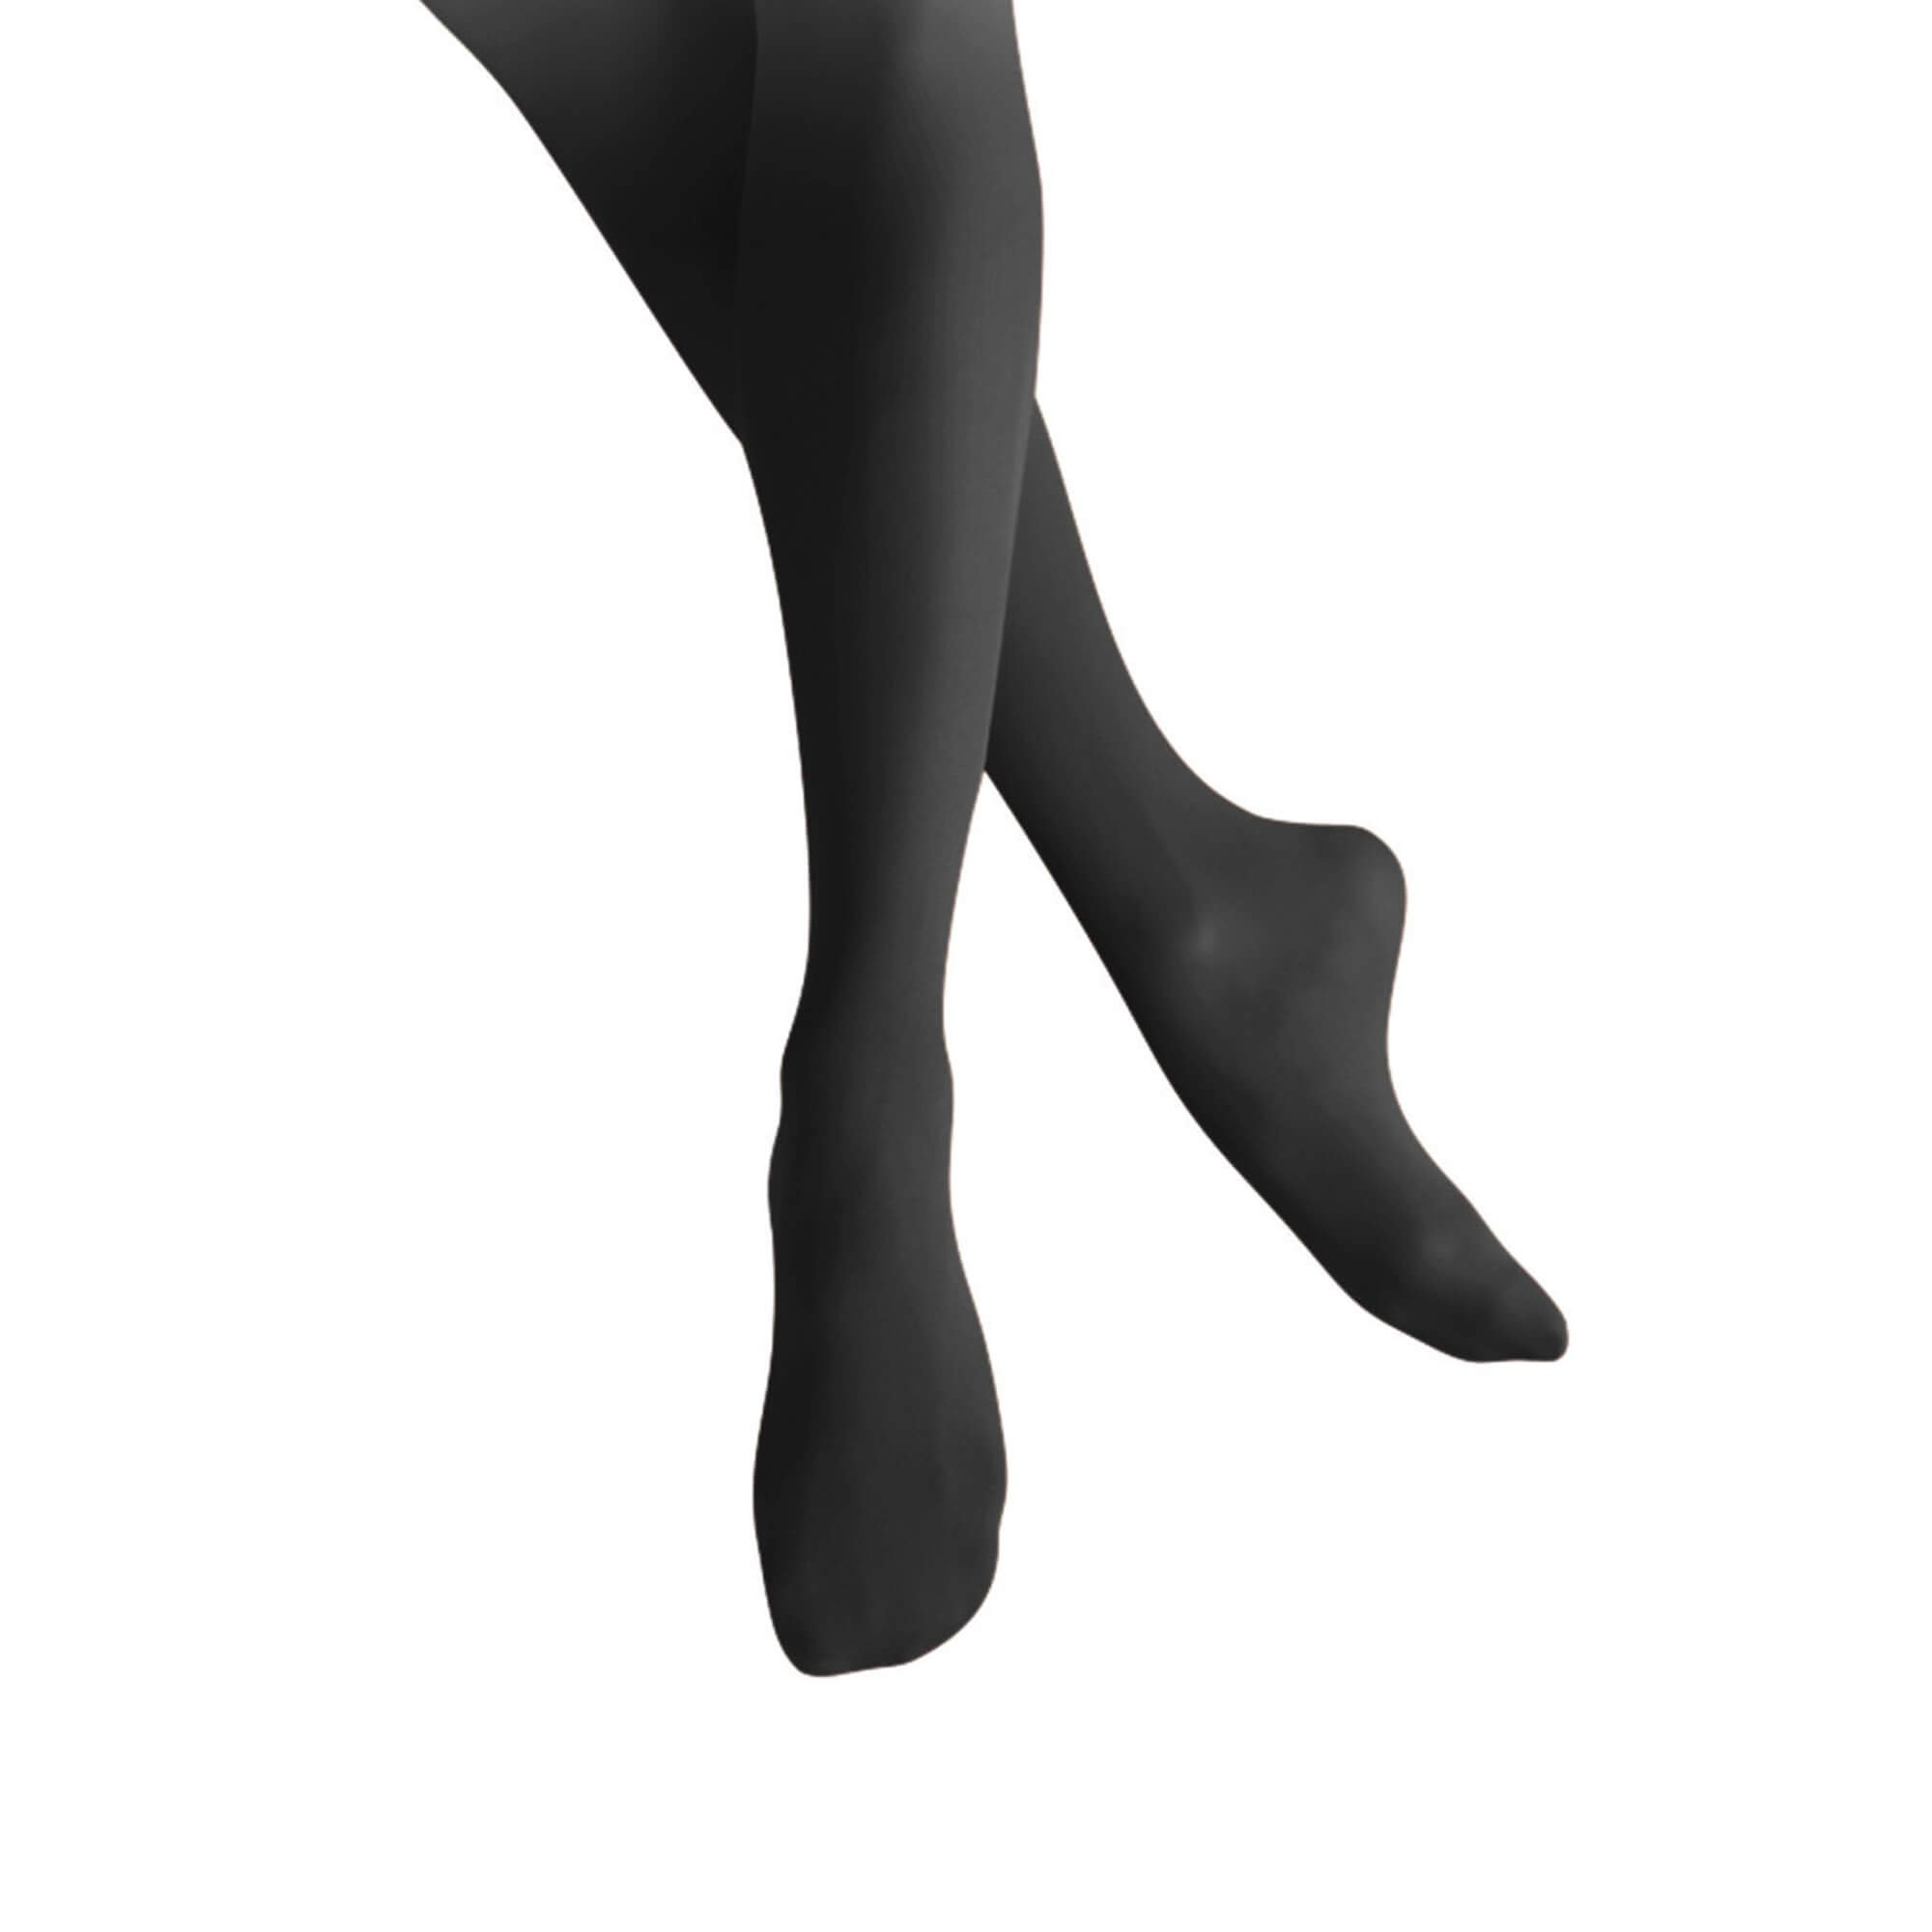 Leos Childrens Firm Fit Full Footed Supplex Tights